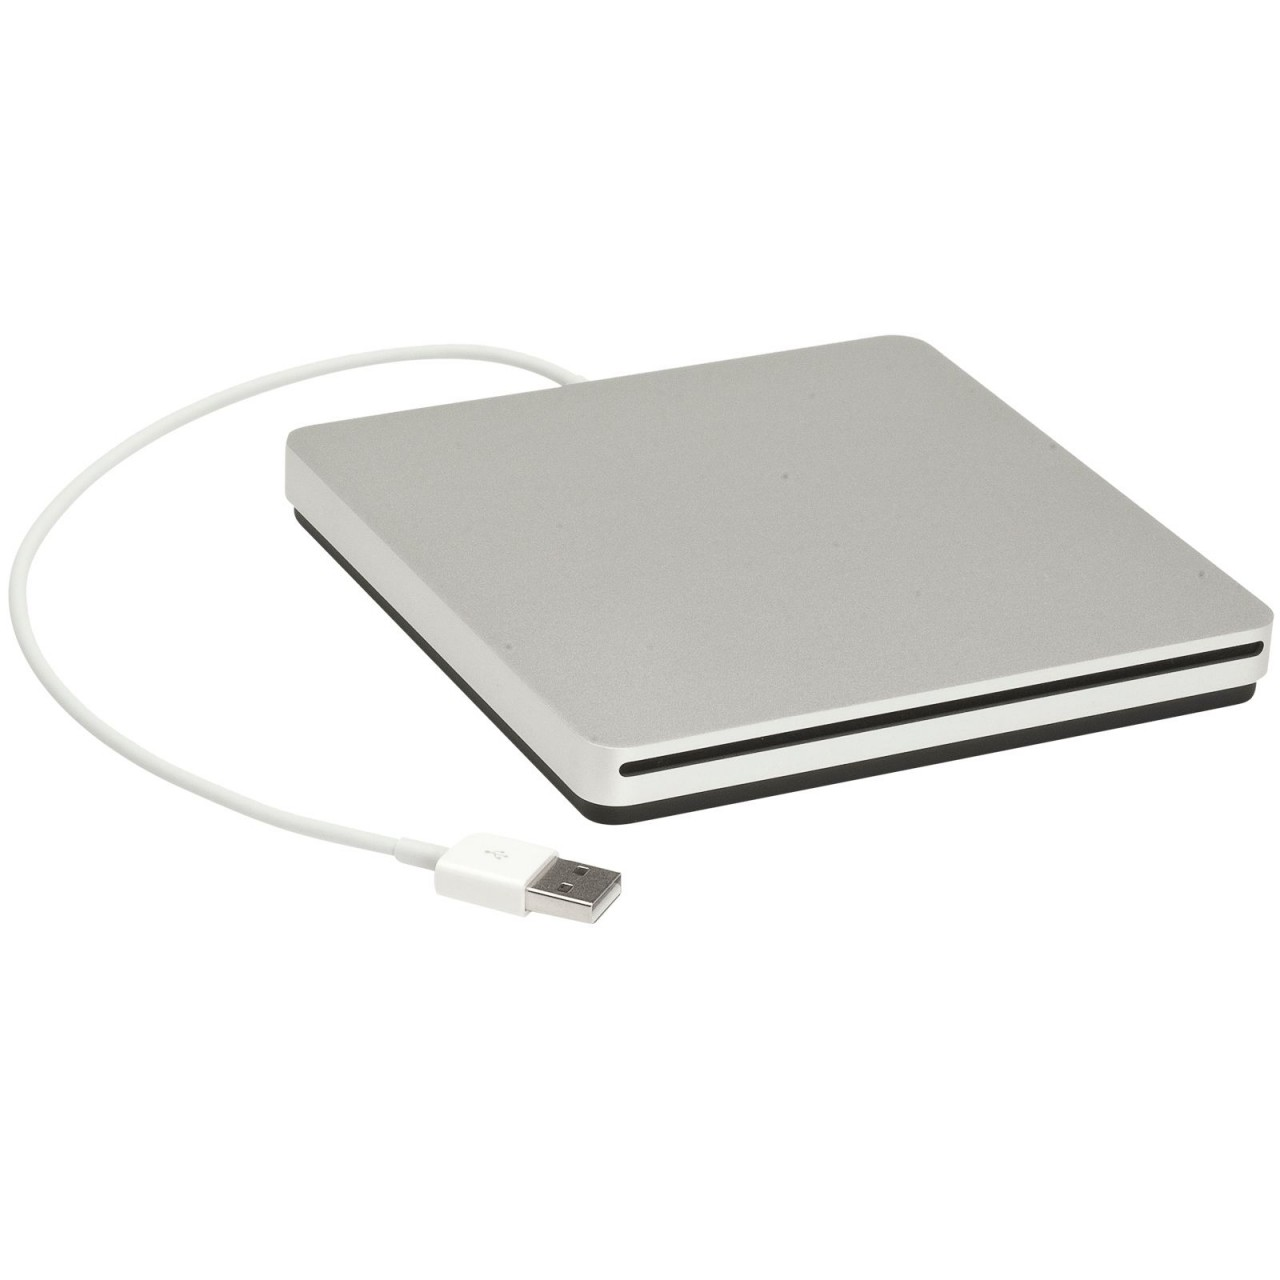 Mac comment éjecter DVD cd solution superdrive